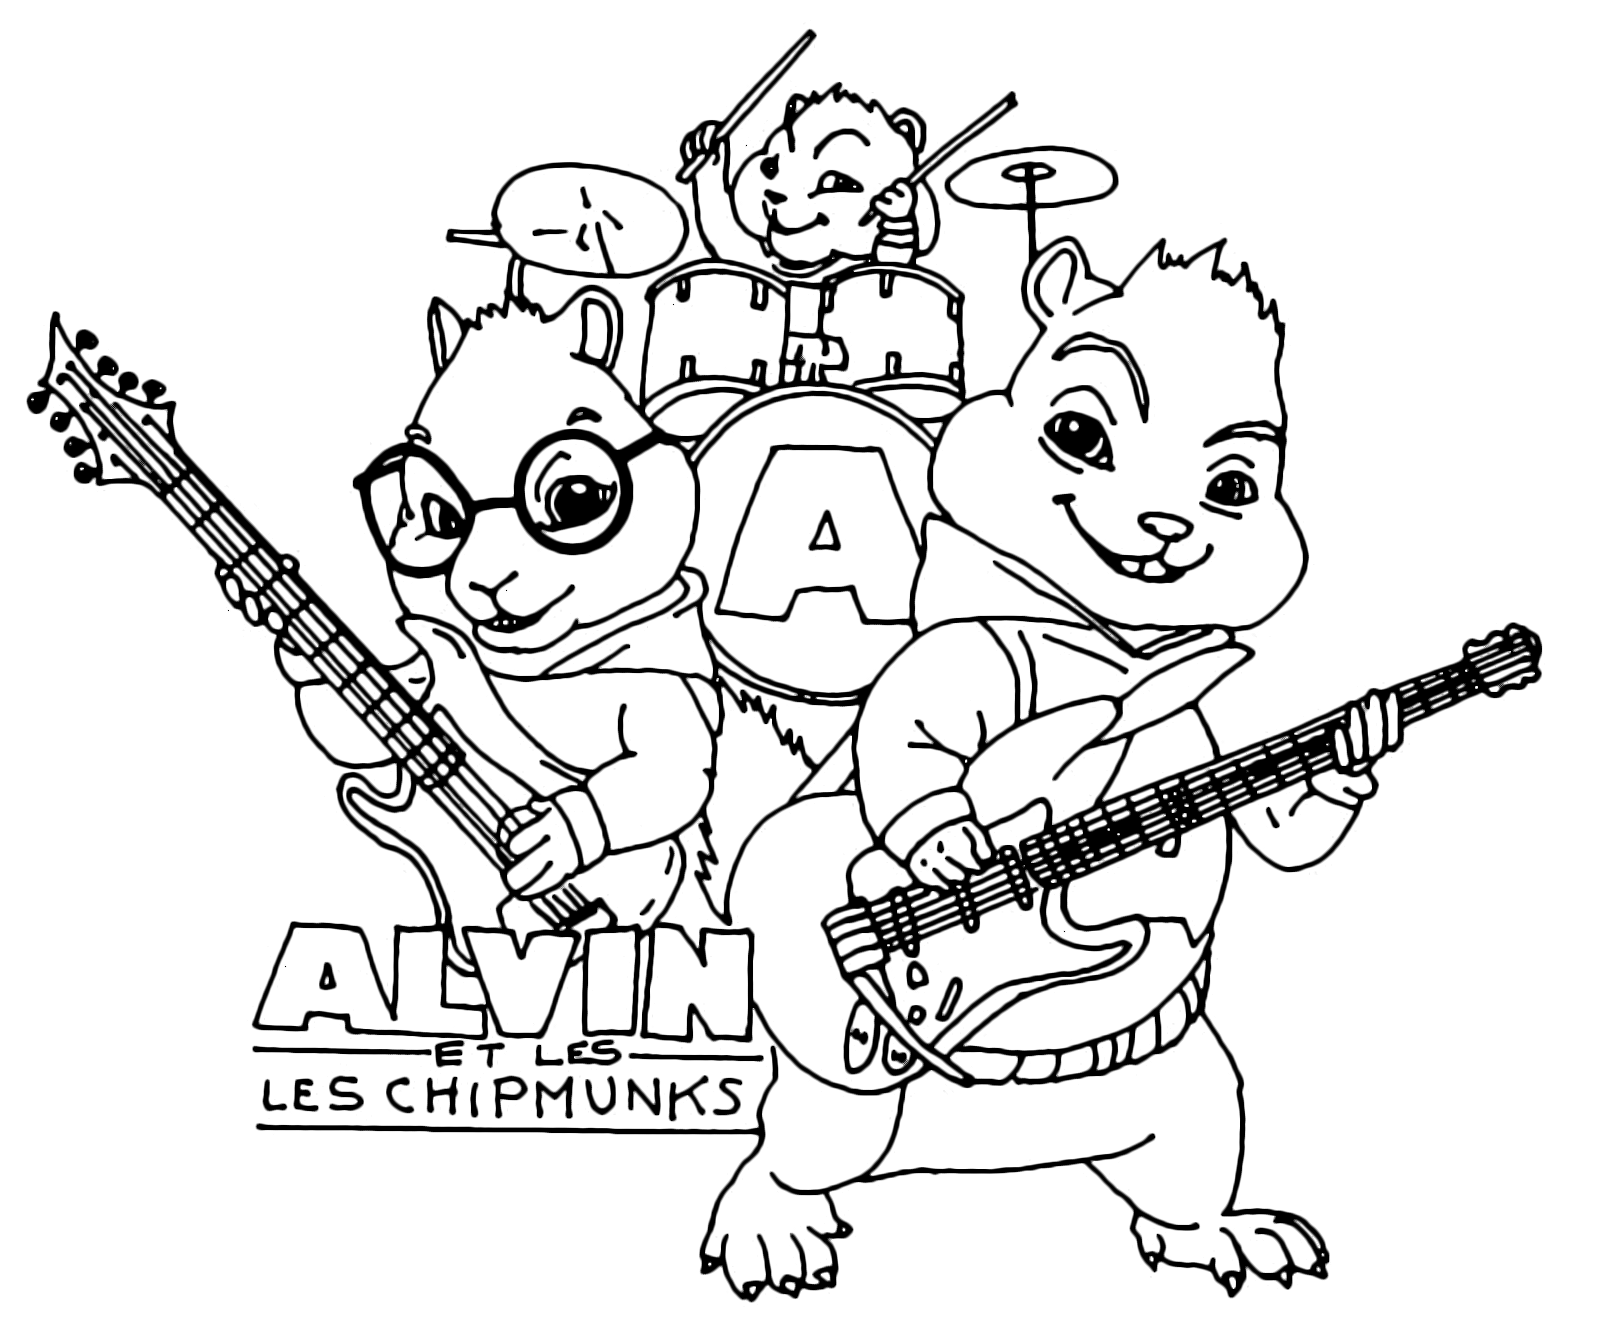 Alvin and the Chipmunks - Alvin Simon and Theodore playing ...